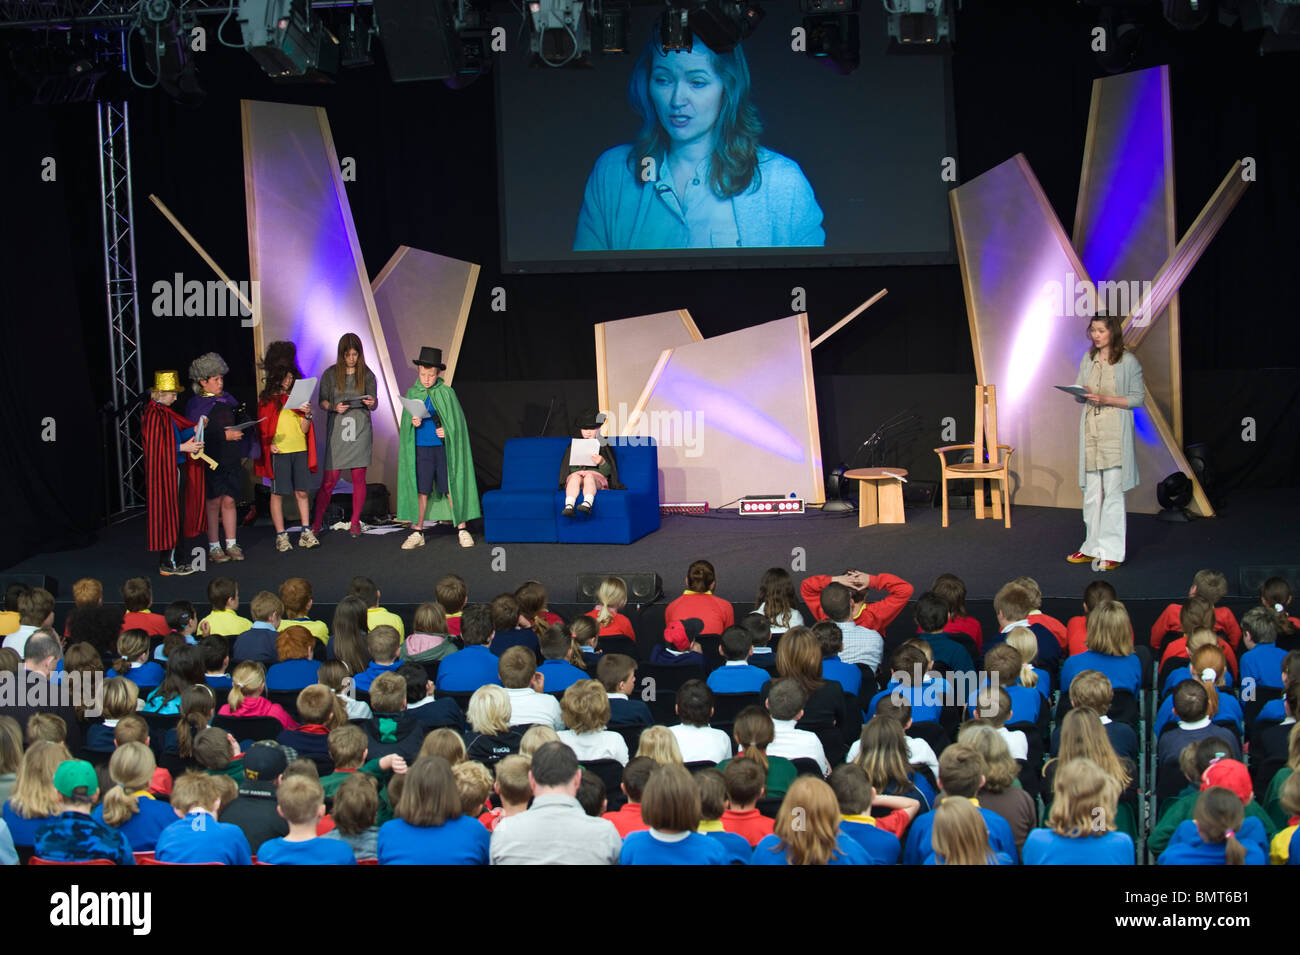 Children's author FE Higgins taking drama workshop at Hay Festival Primary Schools Day Hay on Wye Powys Wales - Stock Image